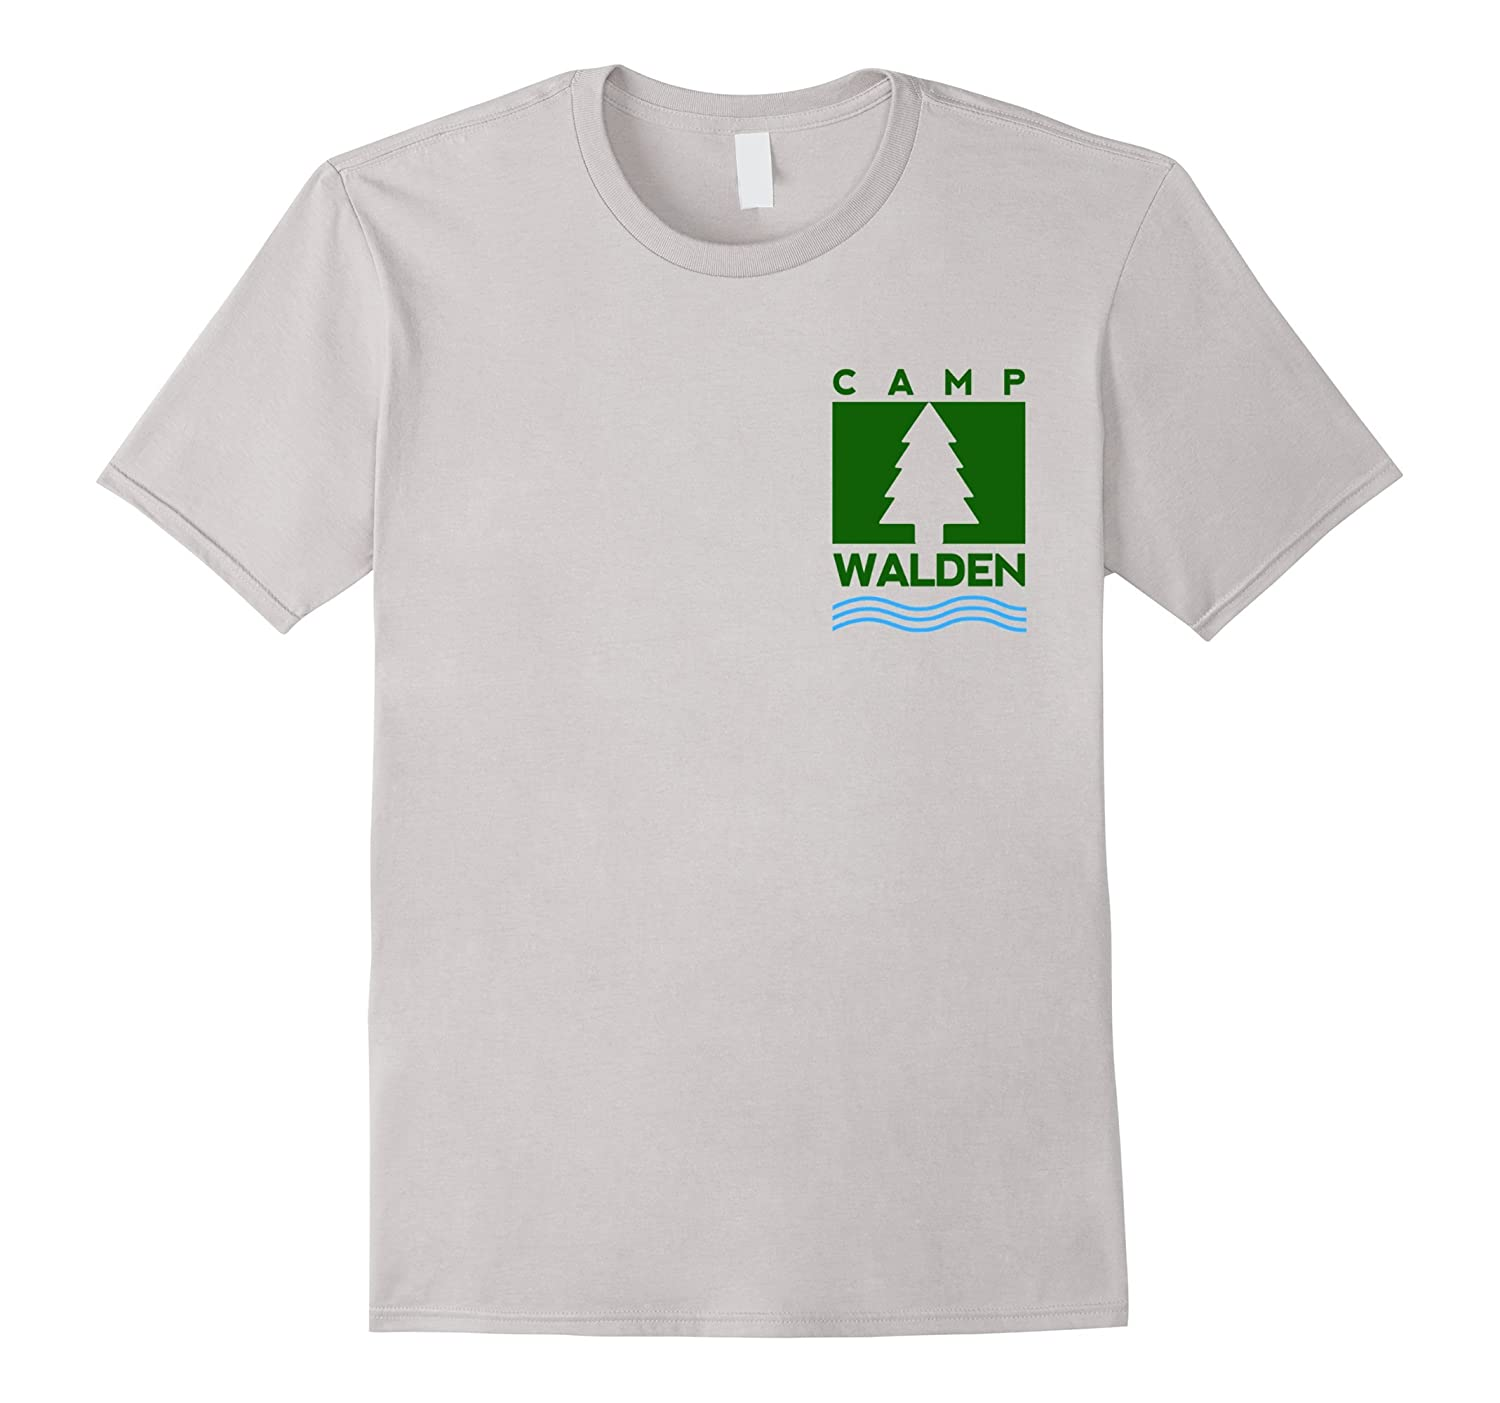 Camp Walden Pocket T-Shirt | Girls Summer Camp Tee-T-Shirt